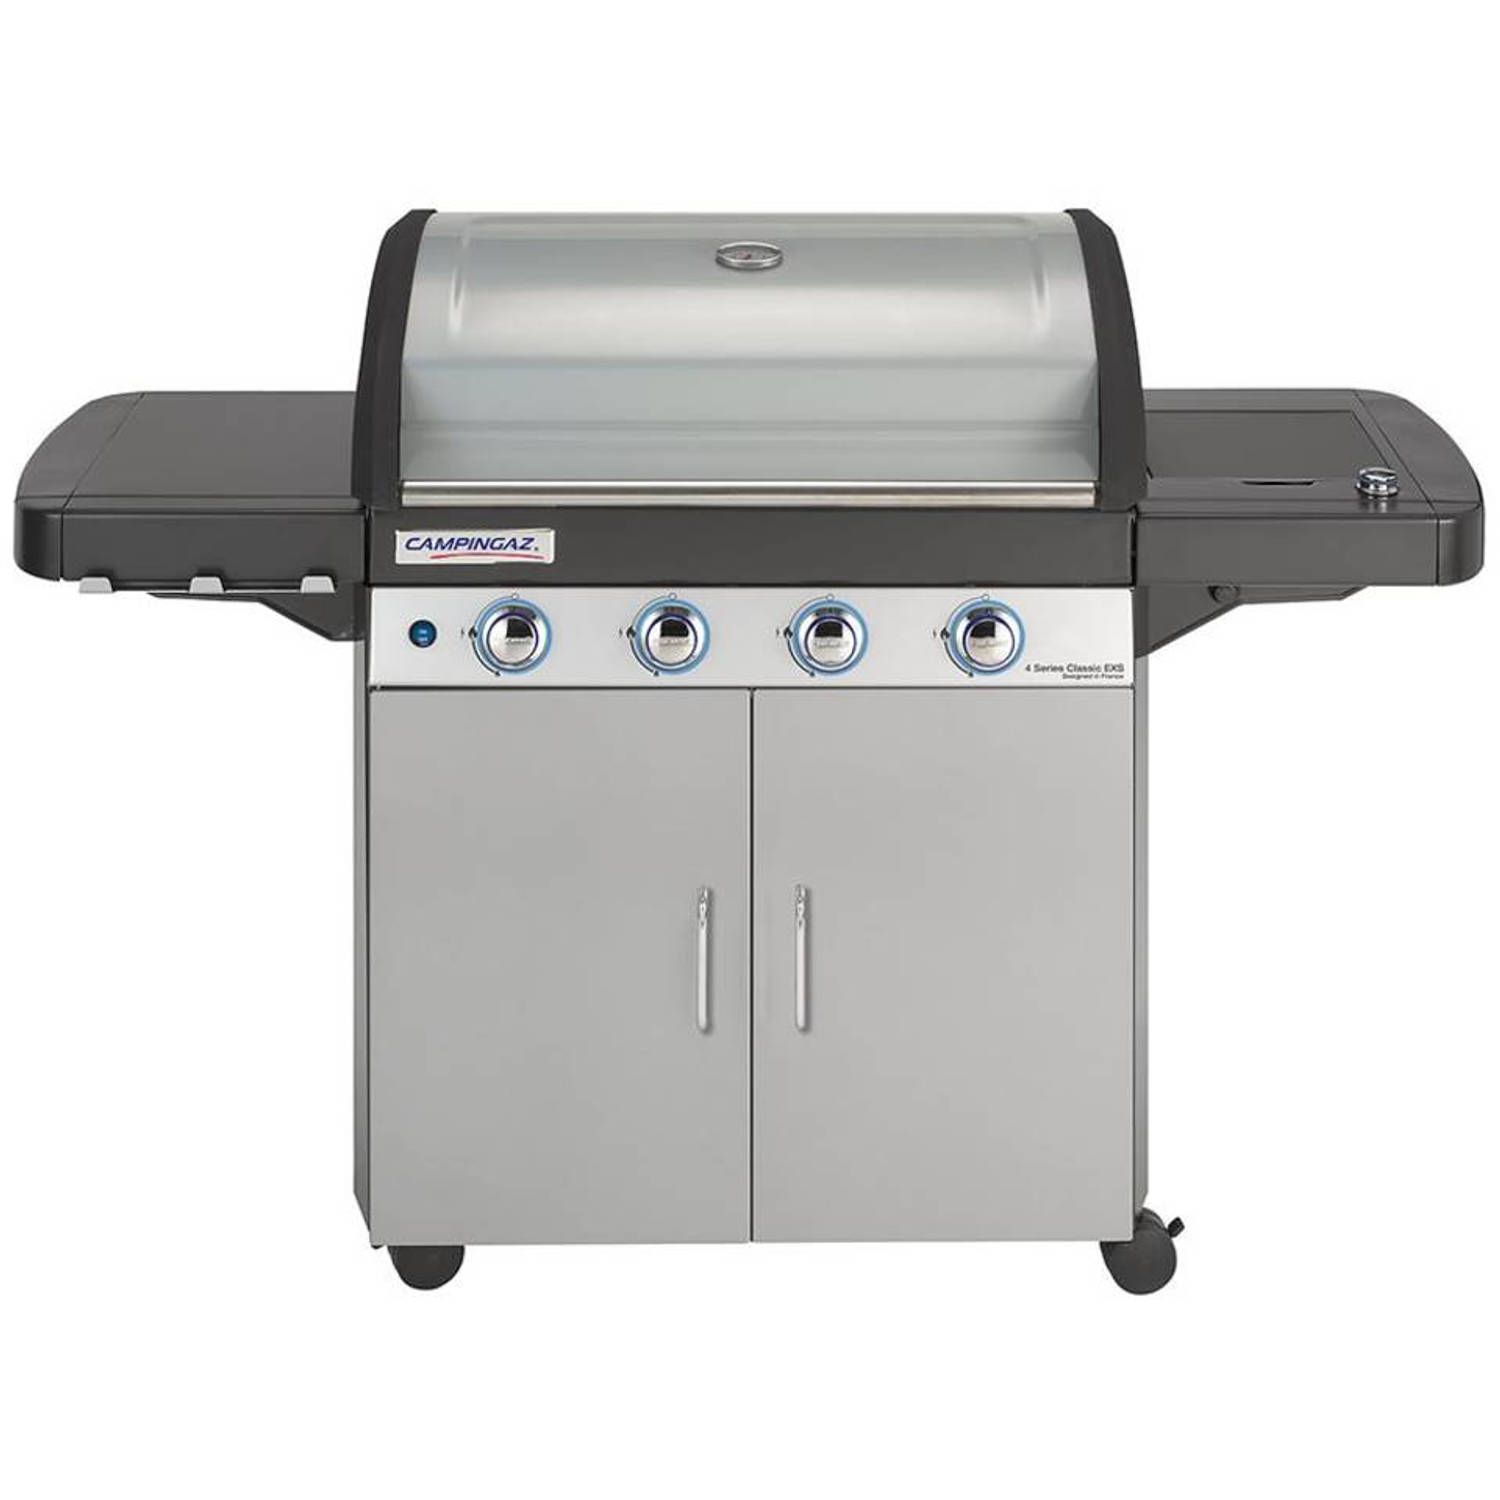 Campingaz 4 Series Classic EXS Gasbarbecue